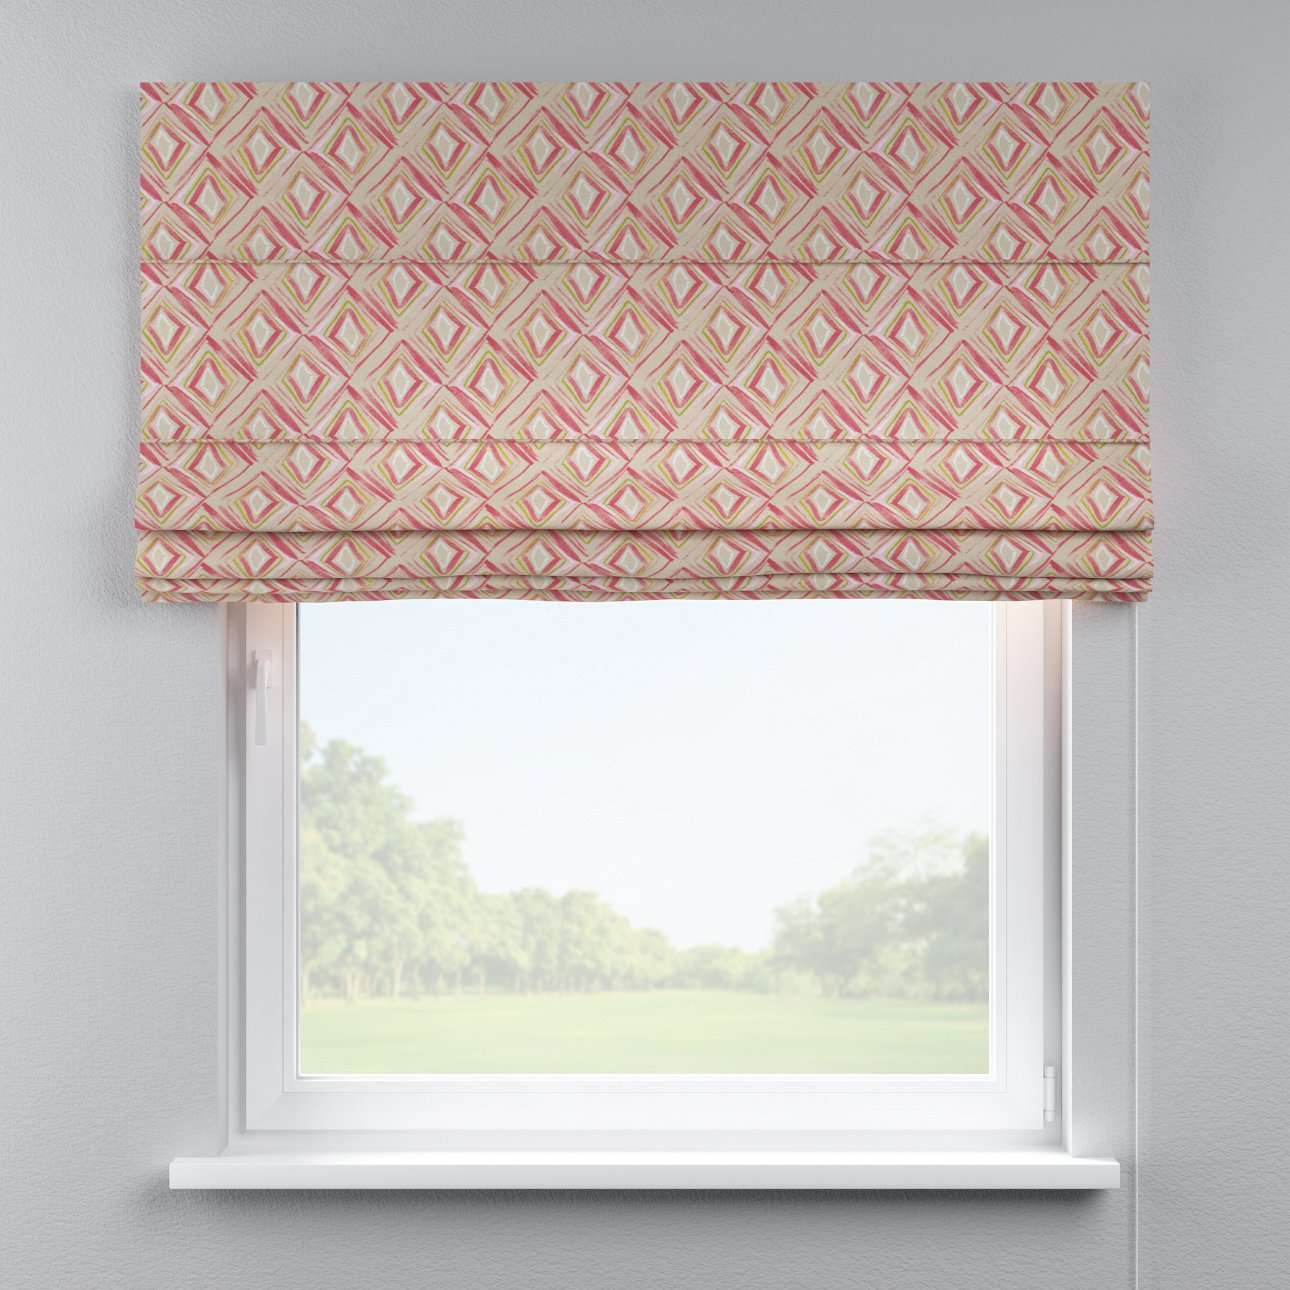 Capri roman blind 80 x 170 cm (31.5 x 67 inch) in collection Londres, fabric: 140-45